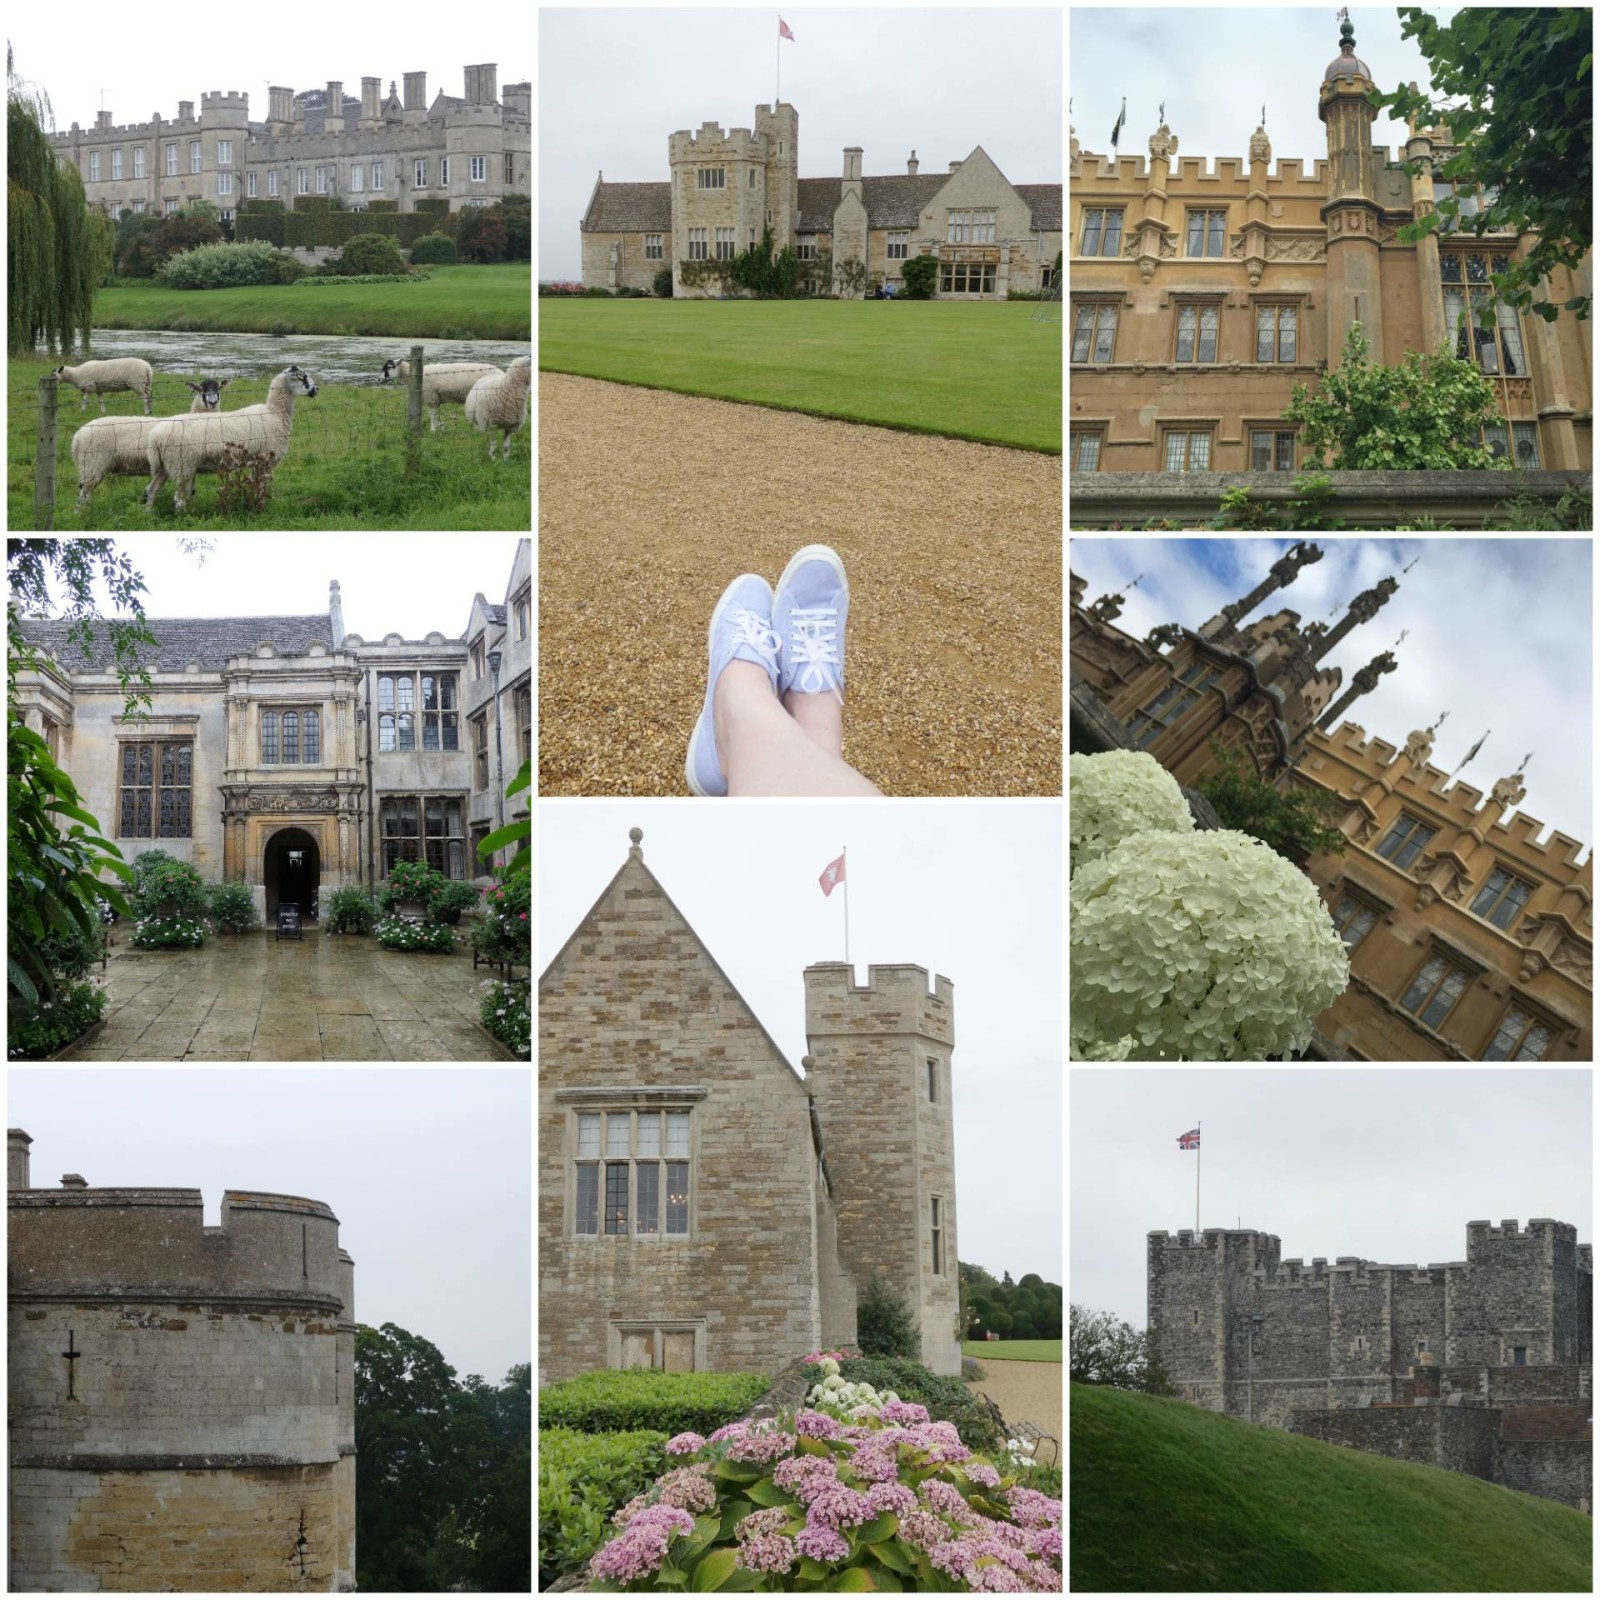 Where-Did-the-Wind-Blow-Me-and-a-few-other-reflections-My-2015-Review-Castles-England